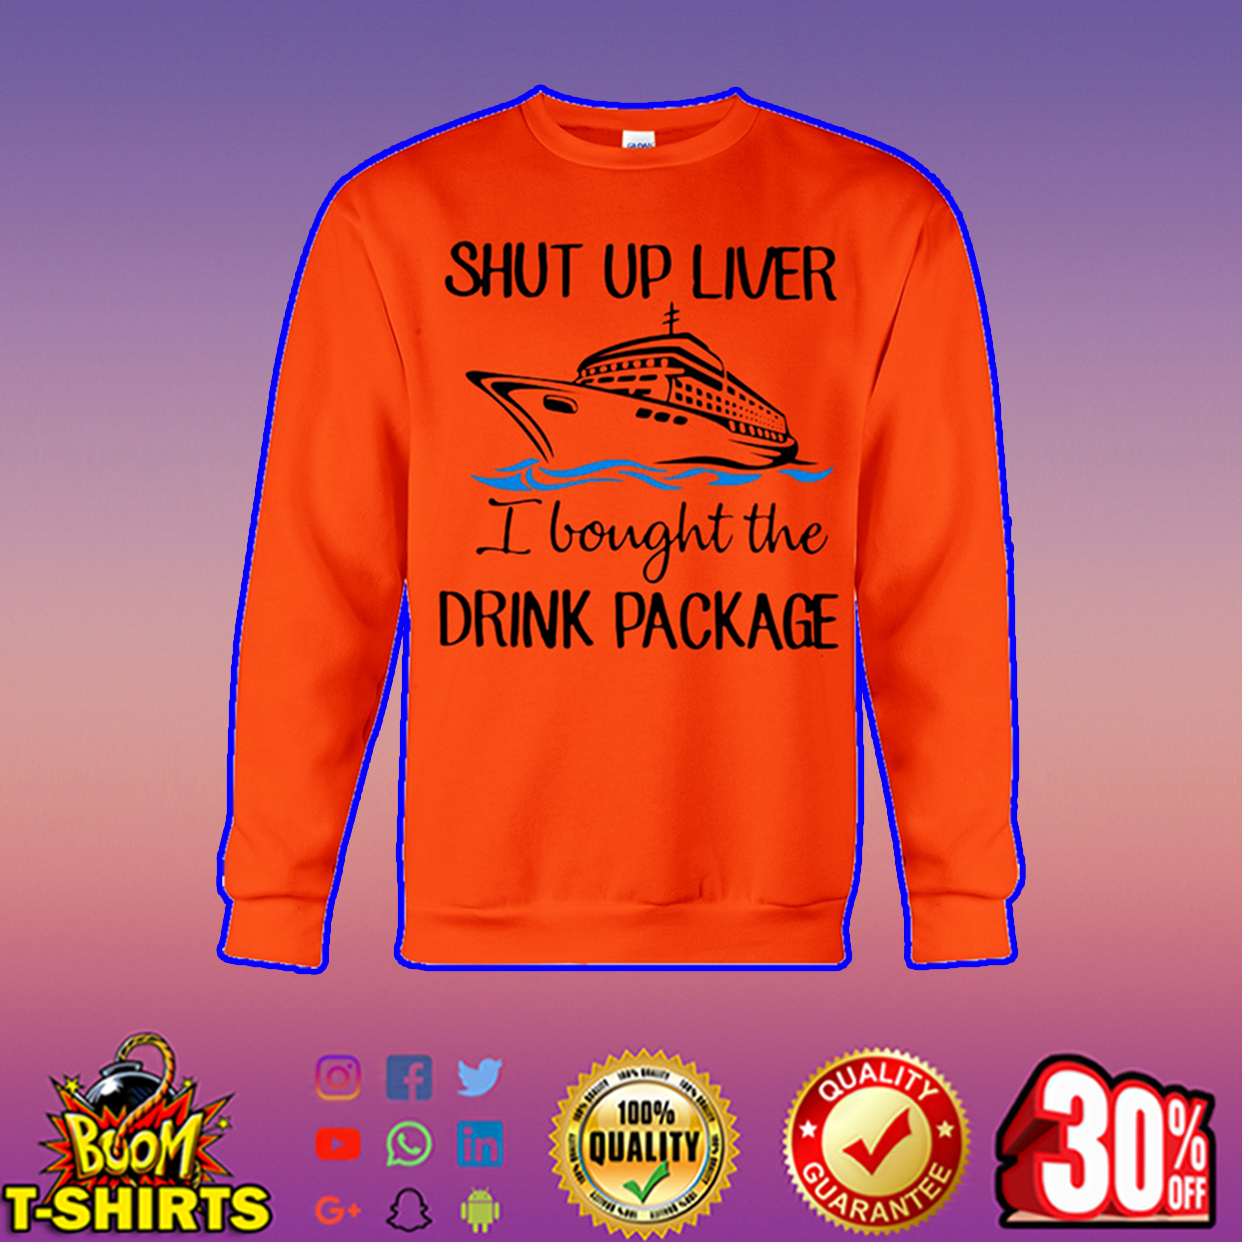 Shut up liver I bought the drink package sweatshirt